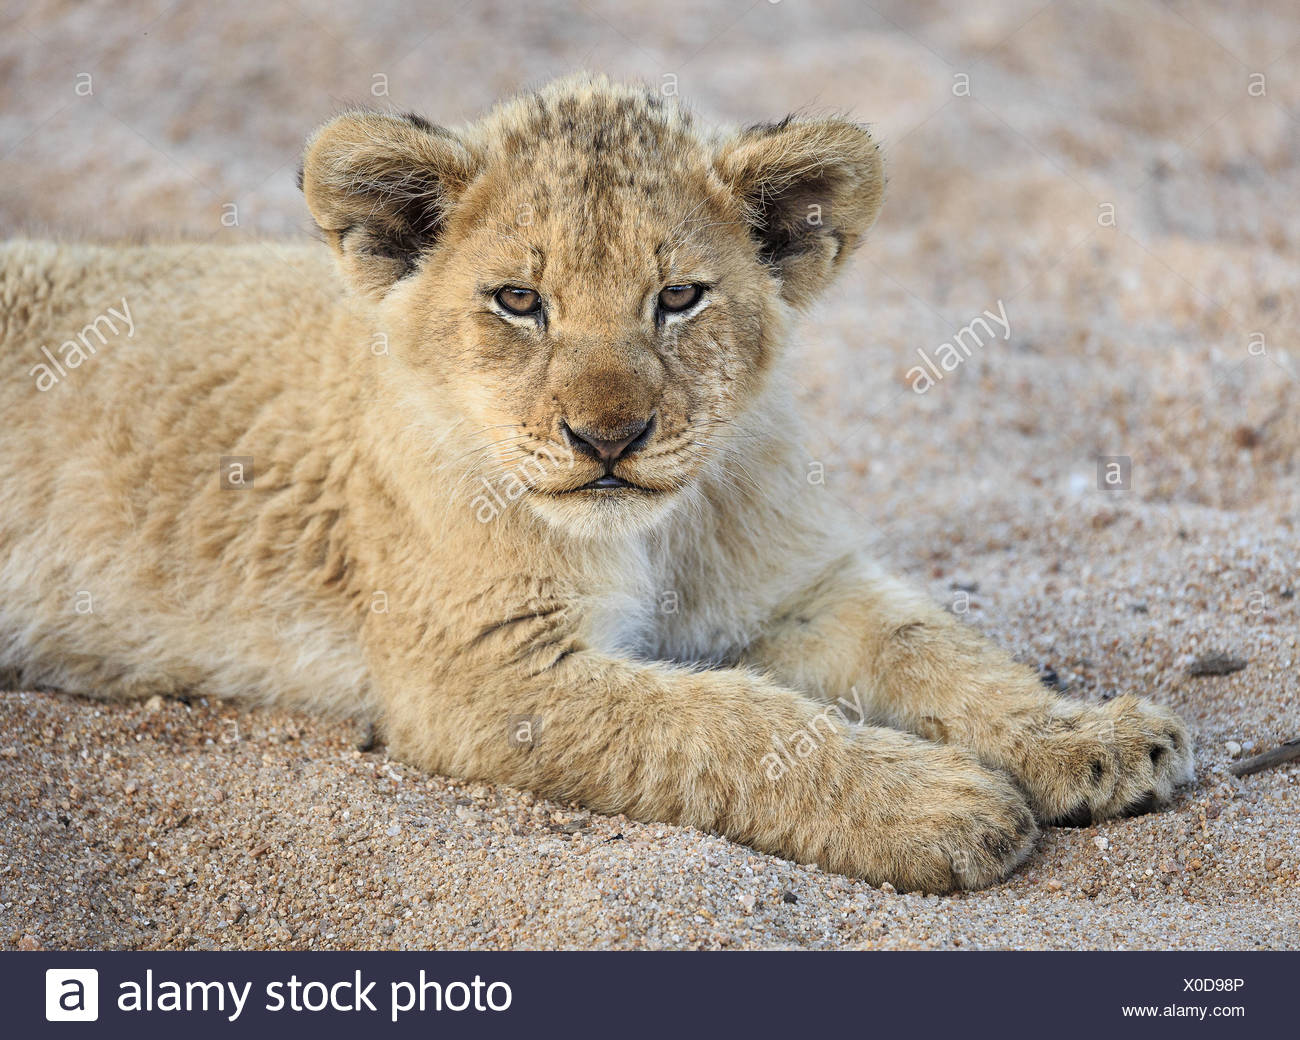 Portrait of a lion cub, Panthera leo, in a sandy riverbed. - Stock Image